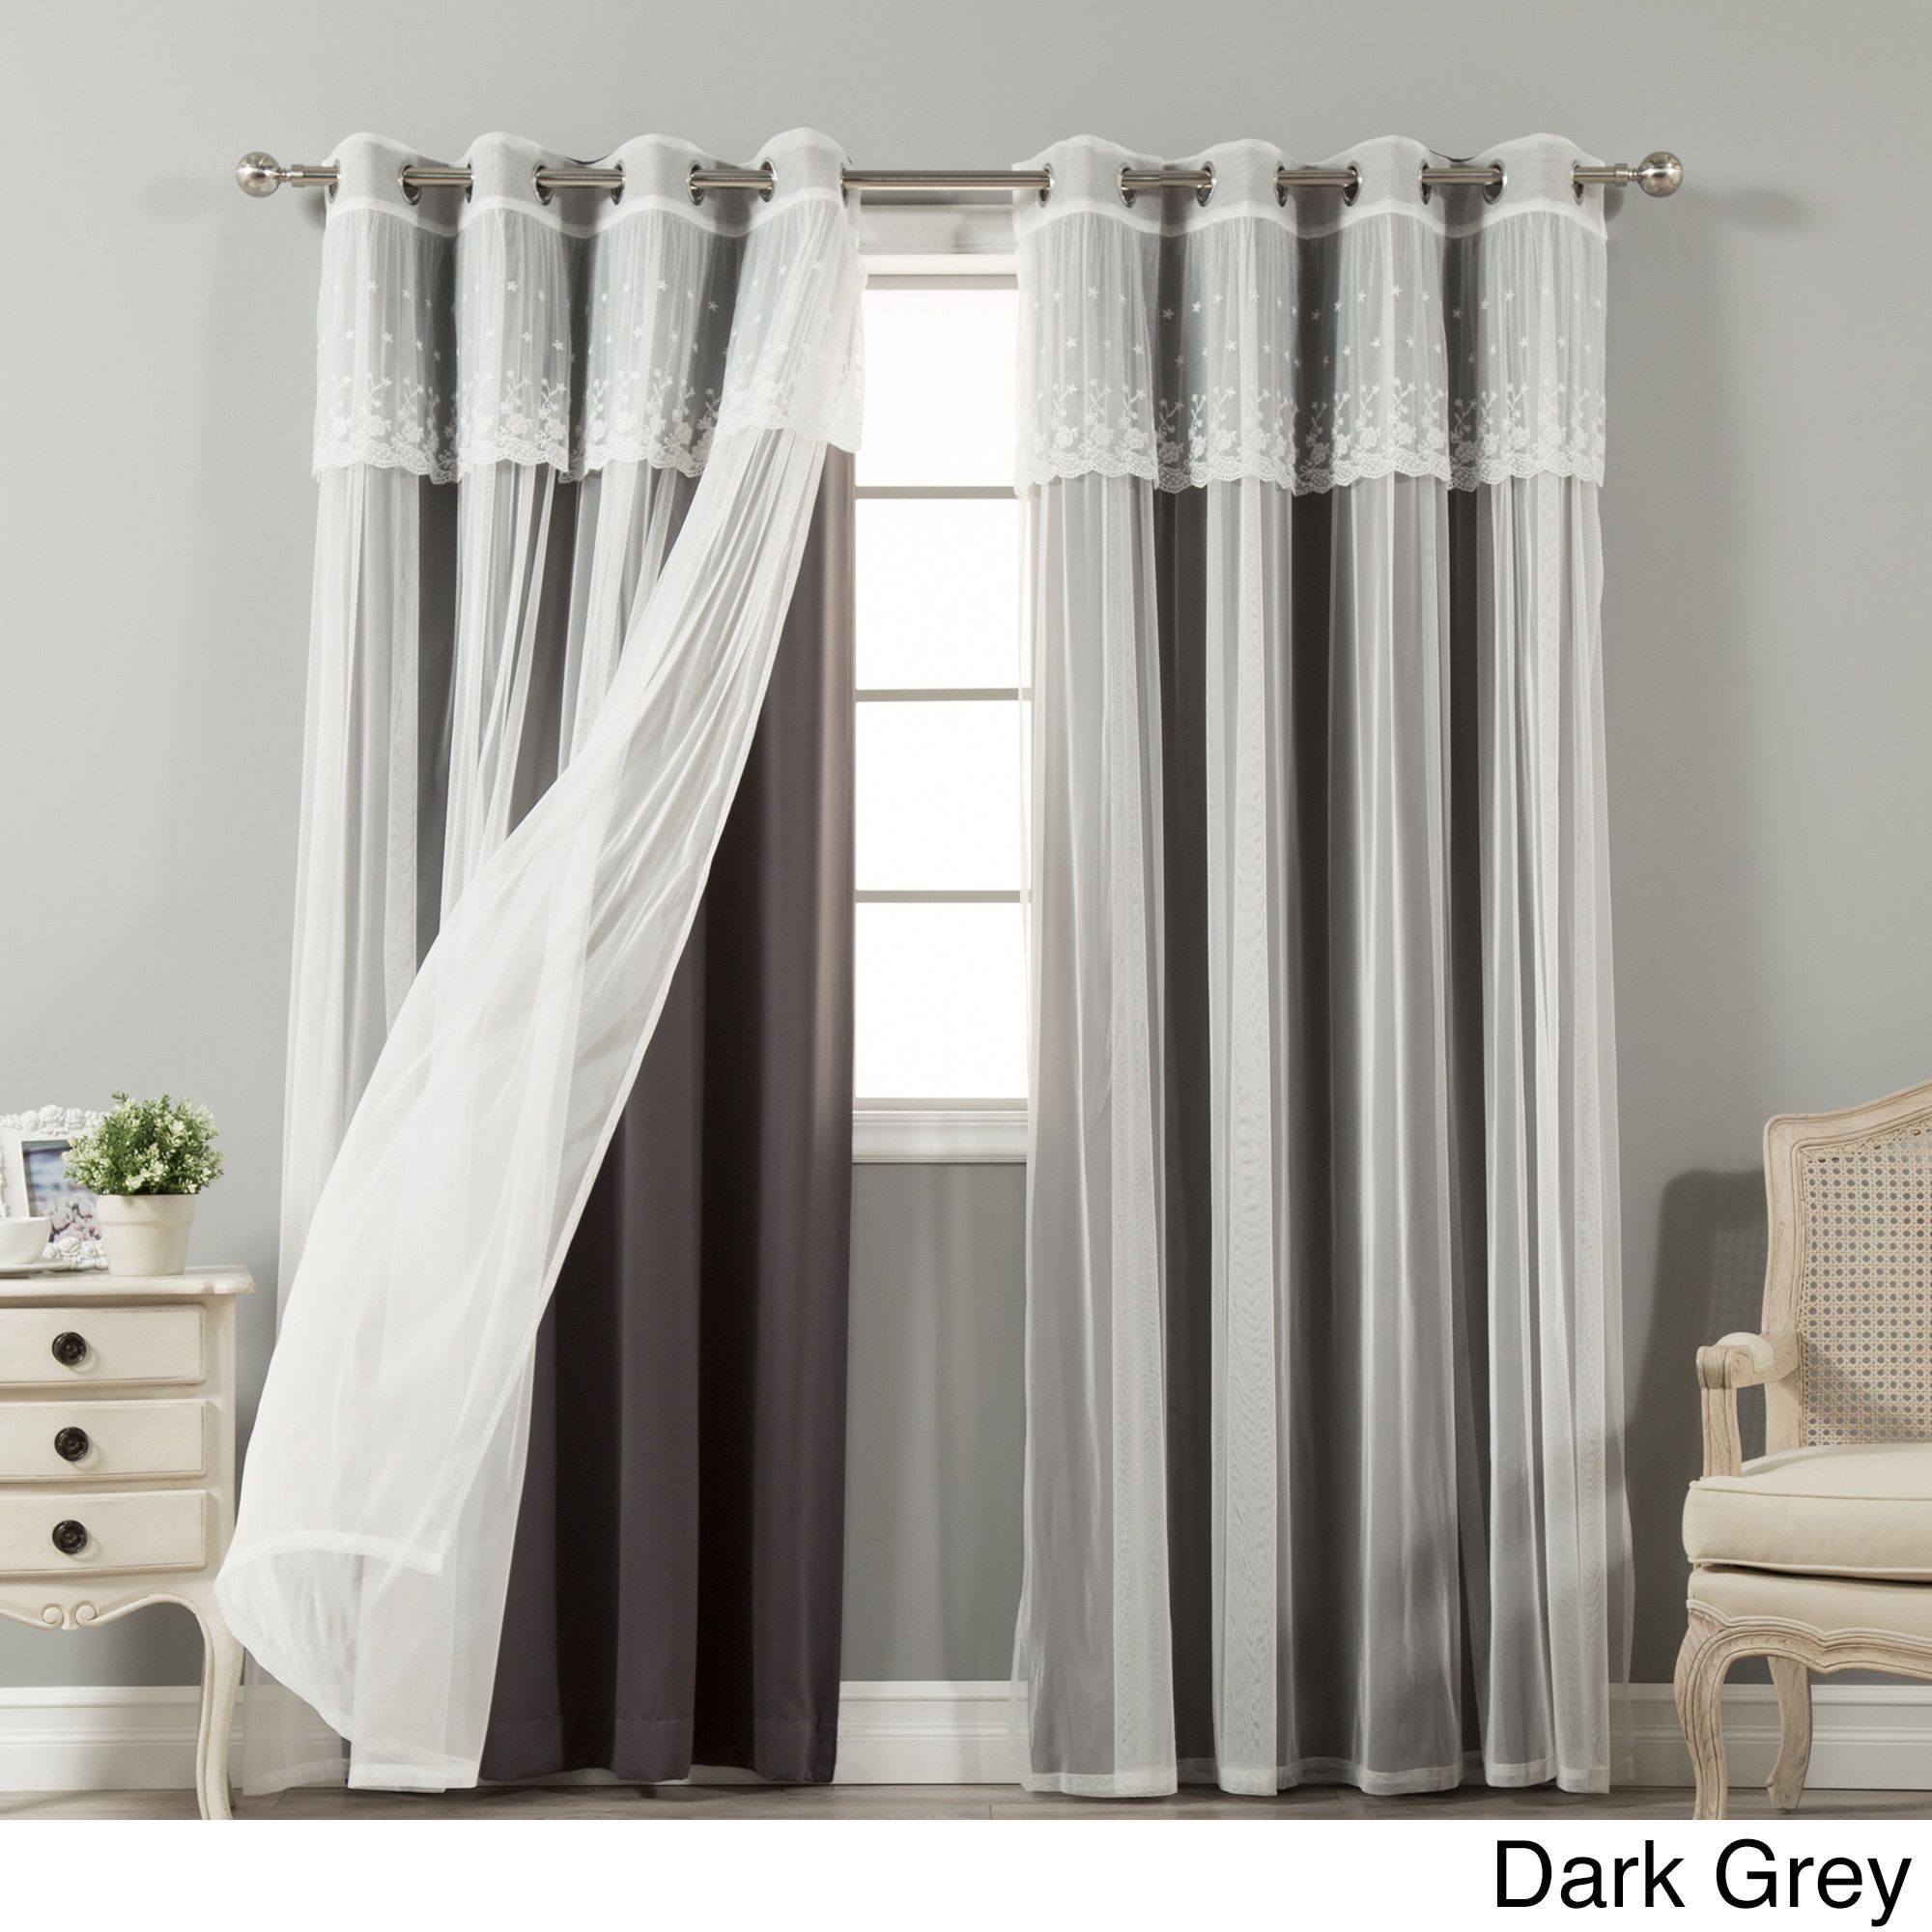 Aurora Home Mix & Match Tulle Sheer With Attached Valance For Tulle Sheer With Attached Valance And Blackout 4 Piece Curtain Panel Pairs (View 2 of 30)